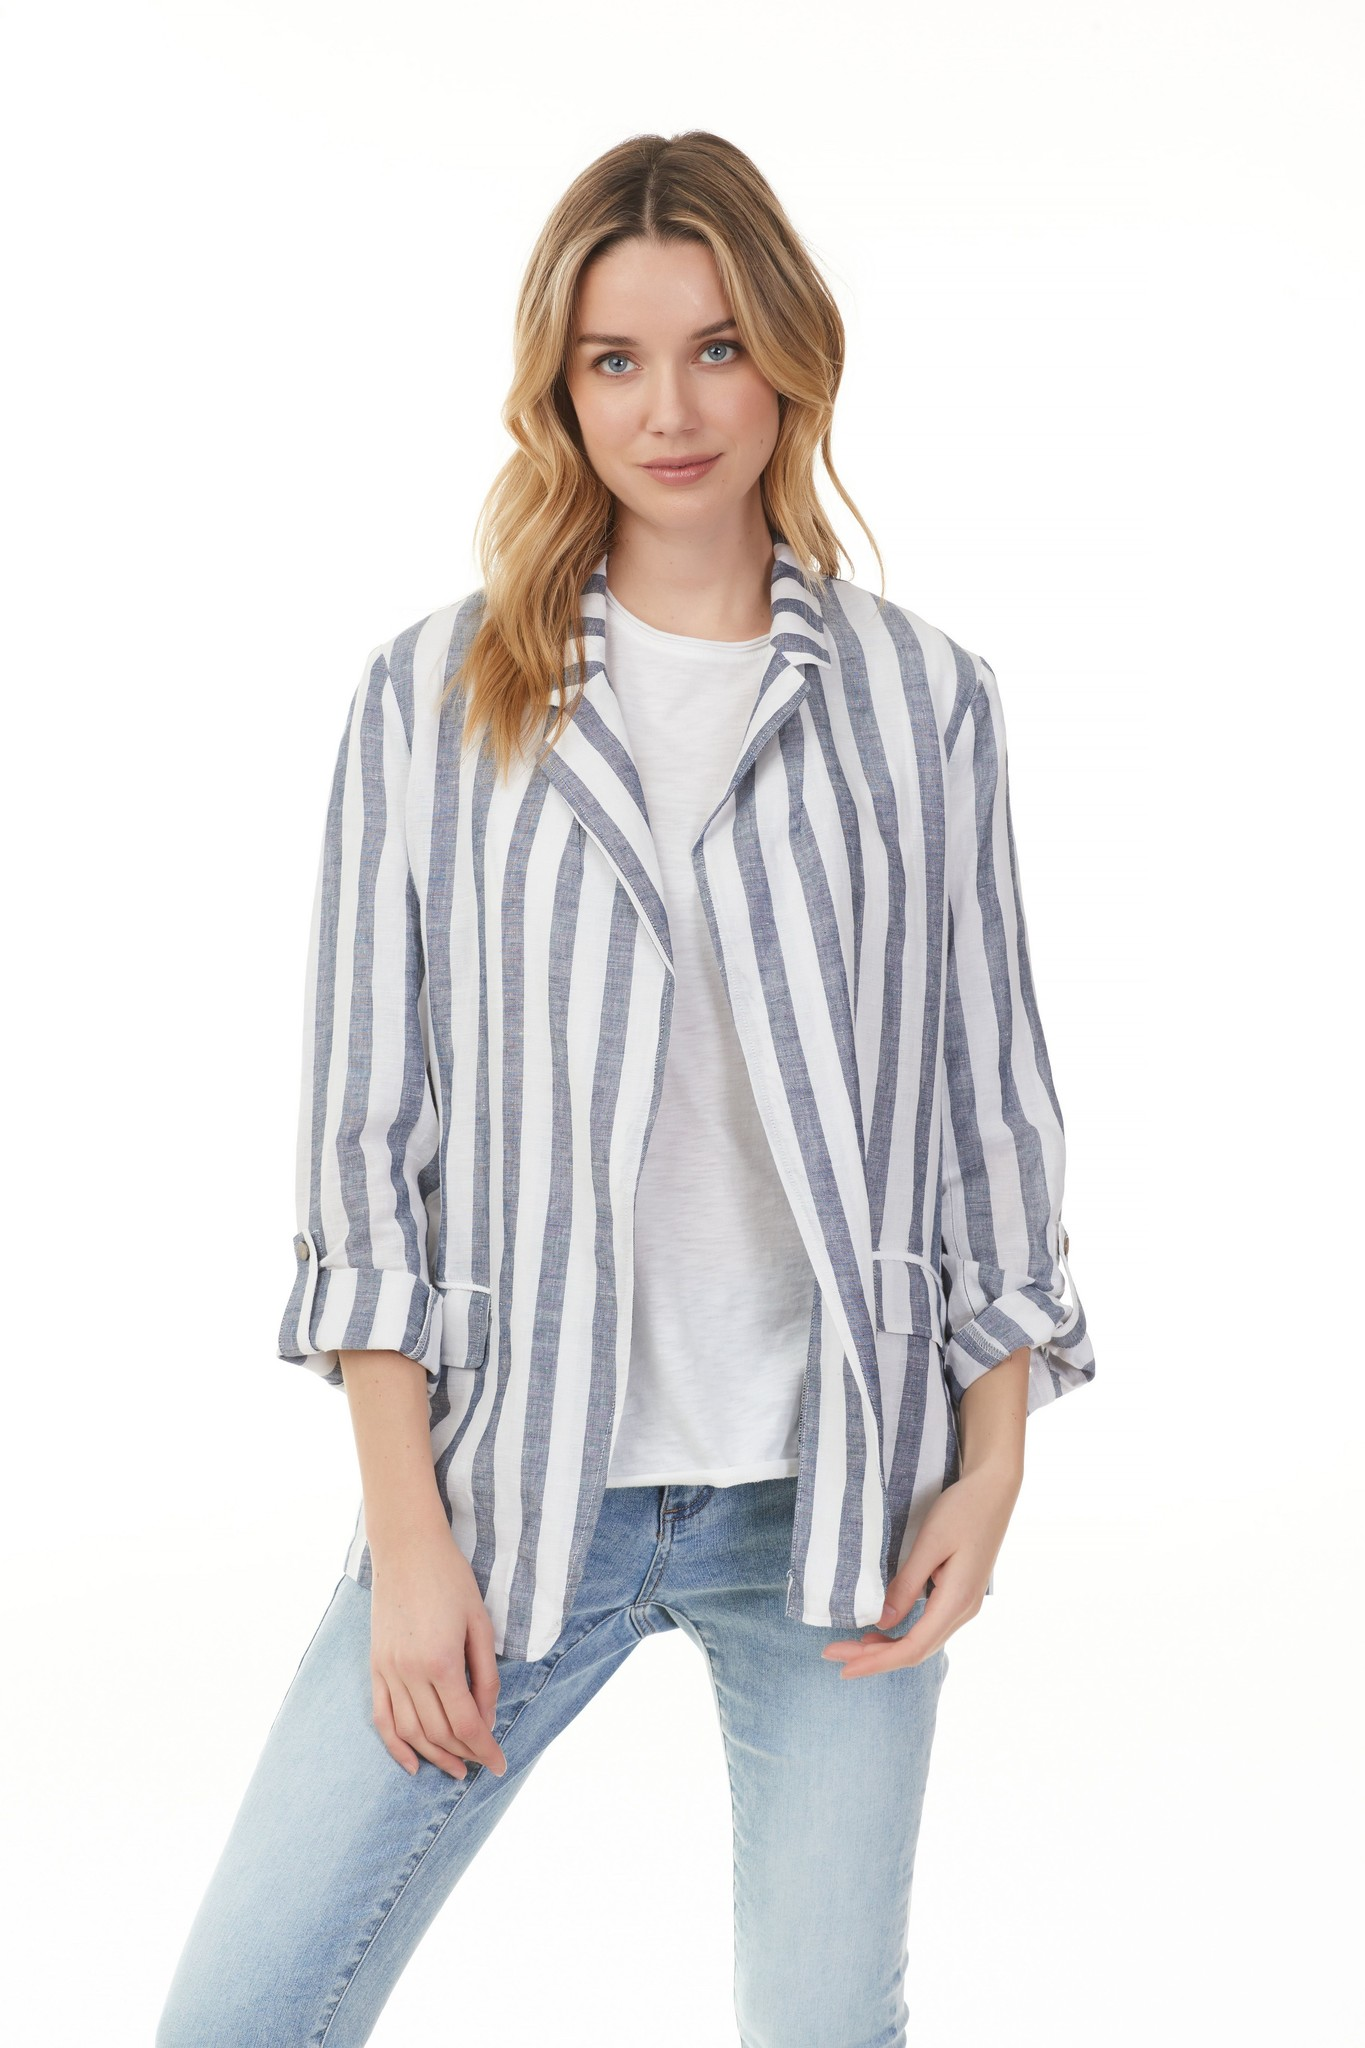 Charlie B Charlie B Jacket - Nautical